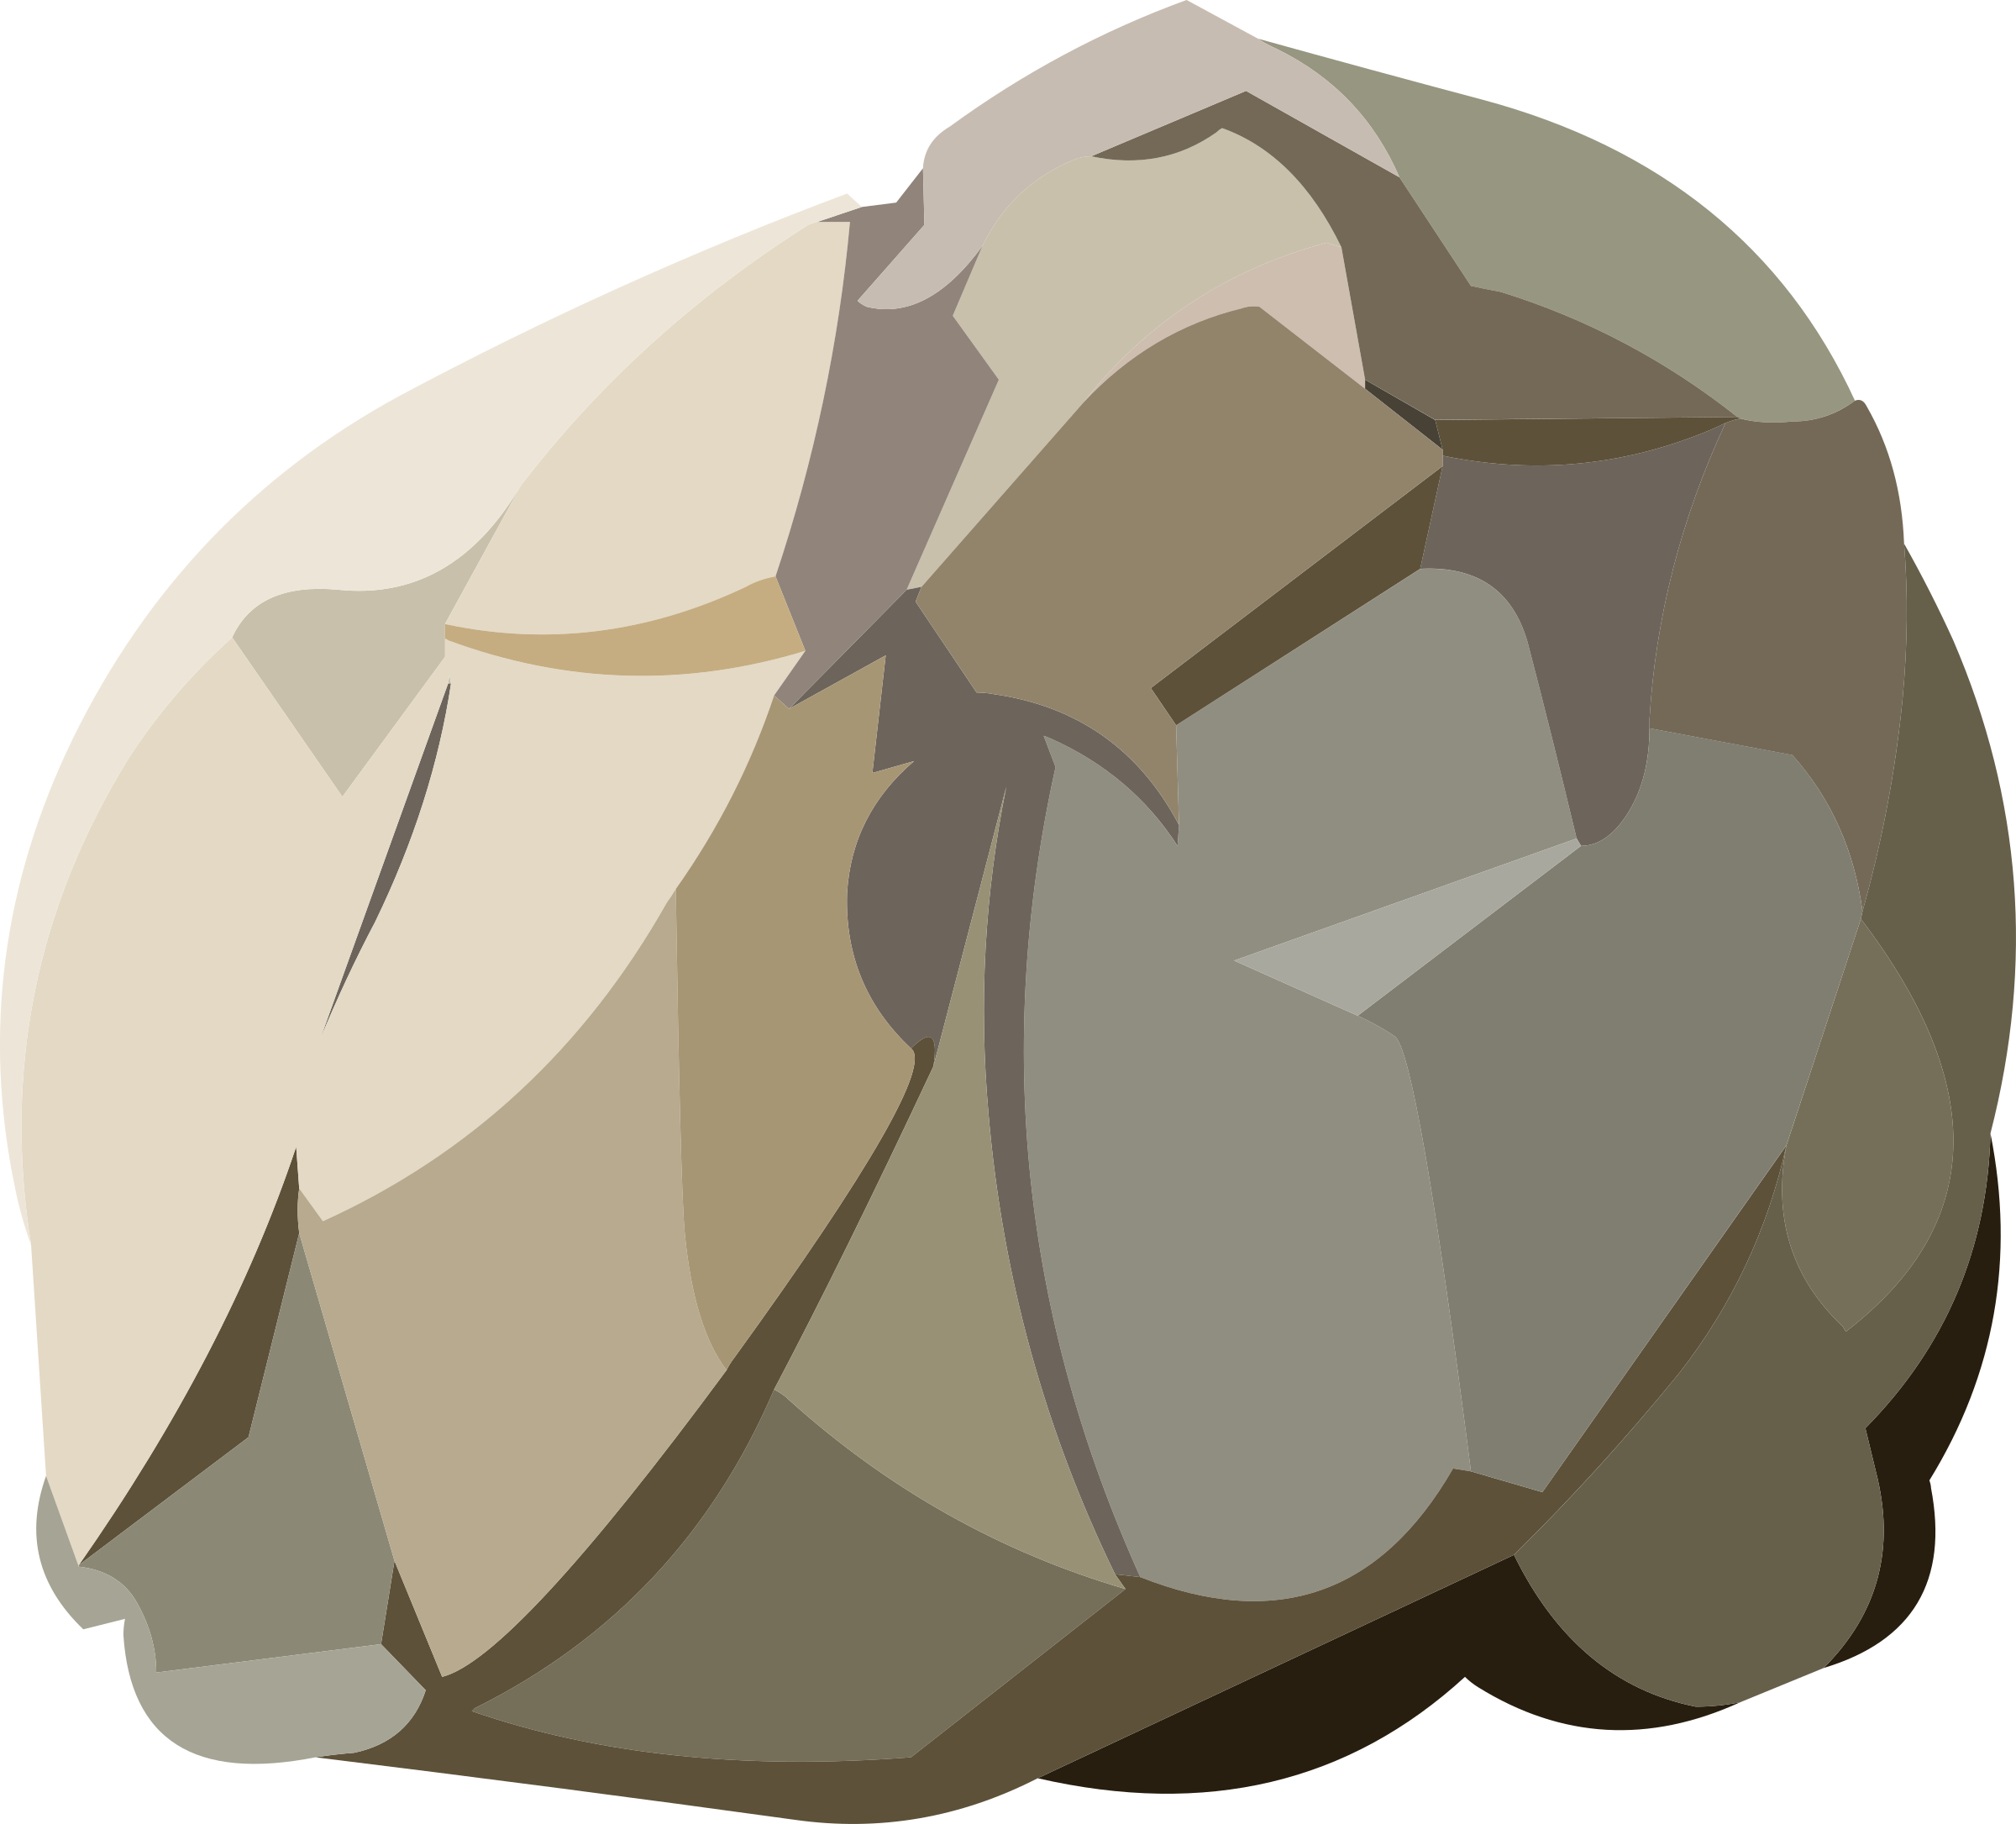 Rock clipart #15, Download drawings